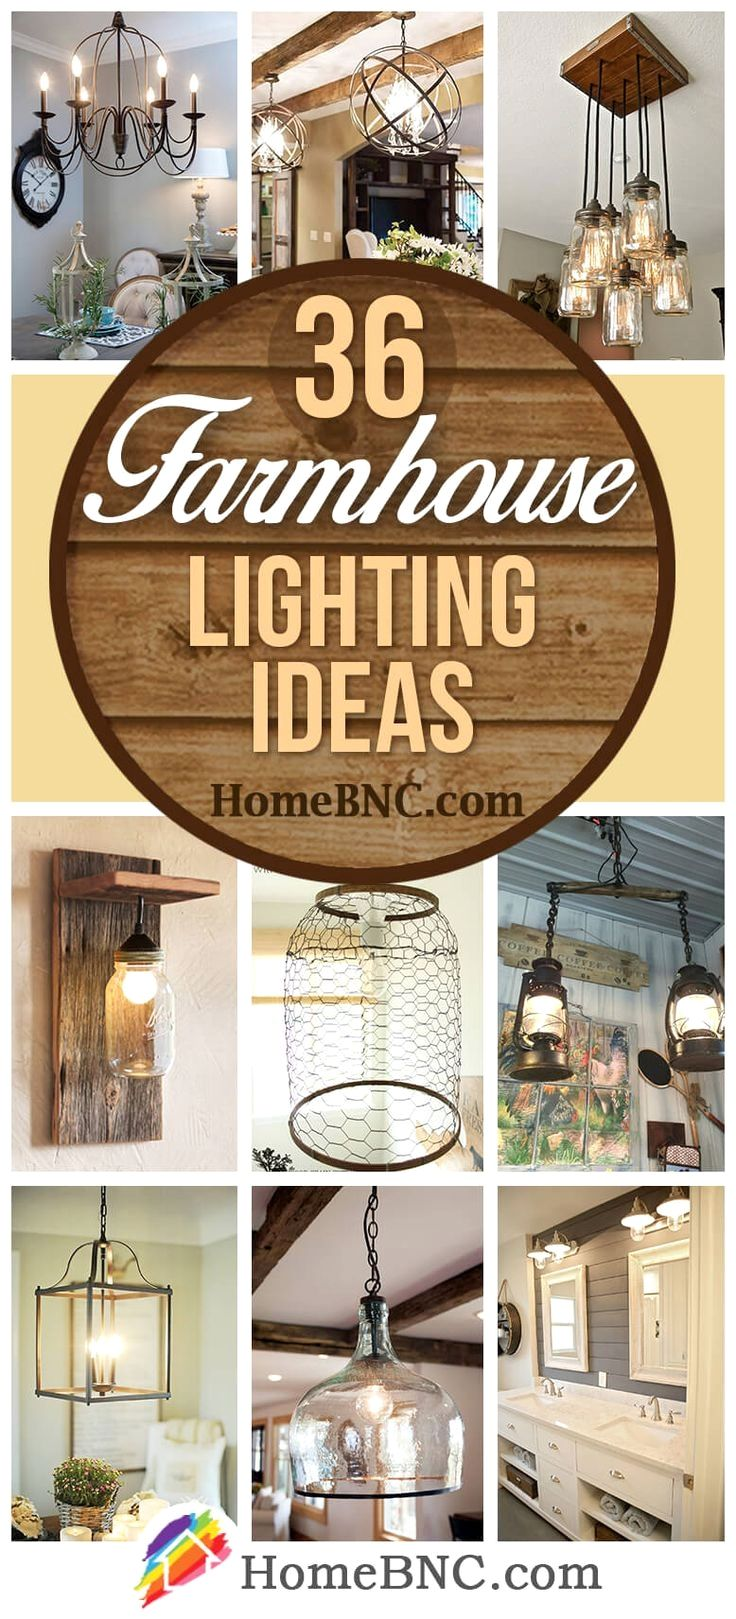 Https Homebnc Com Best Rustic Farmhouse Interior Design Ideas Farmhouseinterior: Farmhouse Lamps, Farmhouse Decor, Farmhouse Lighting